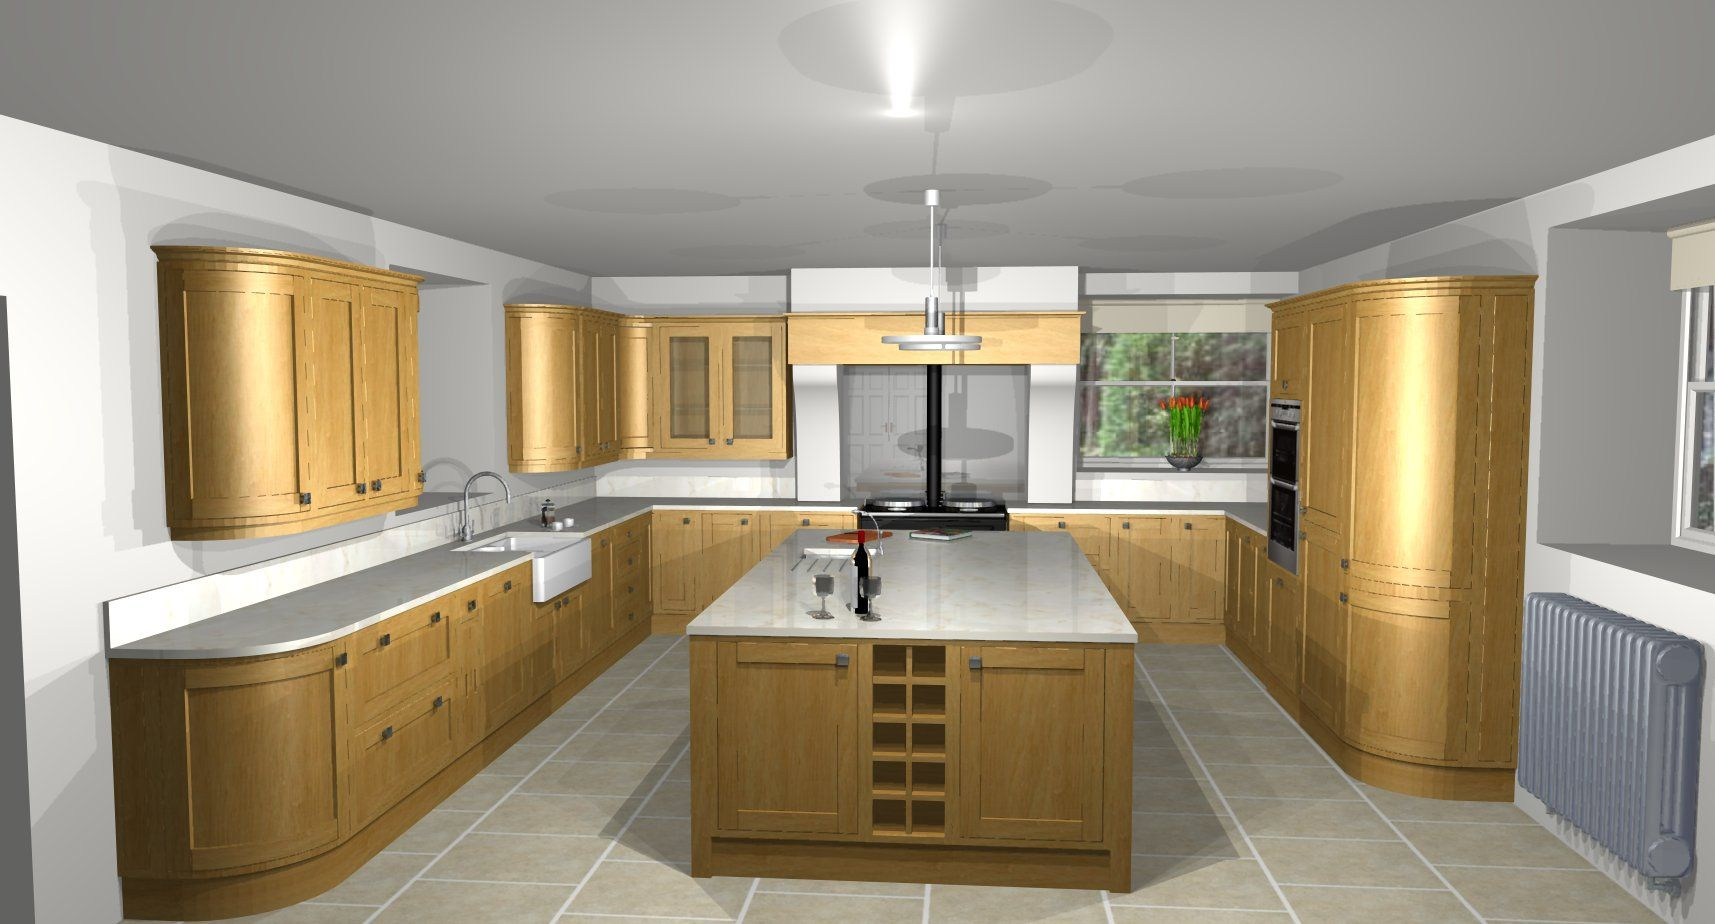 Kitchen Design Software B Andq Pin By Annora On Home Interior Pinterest Cad Design